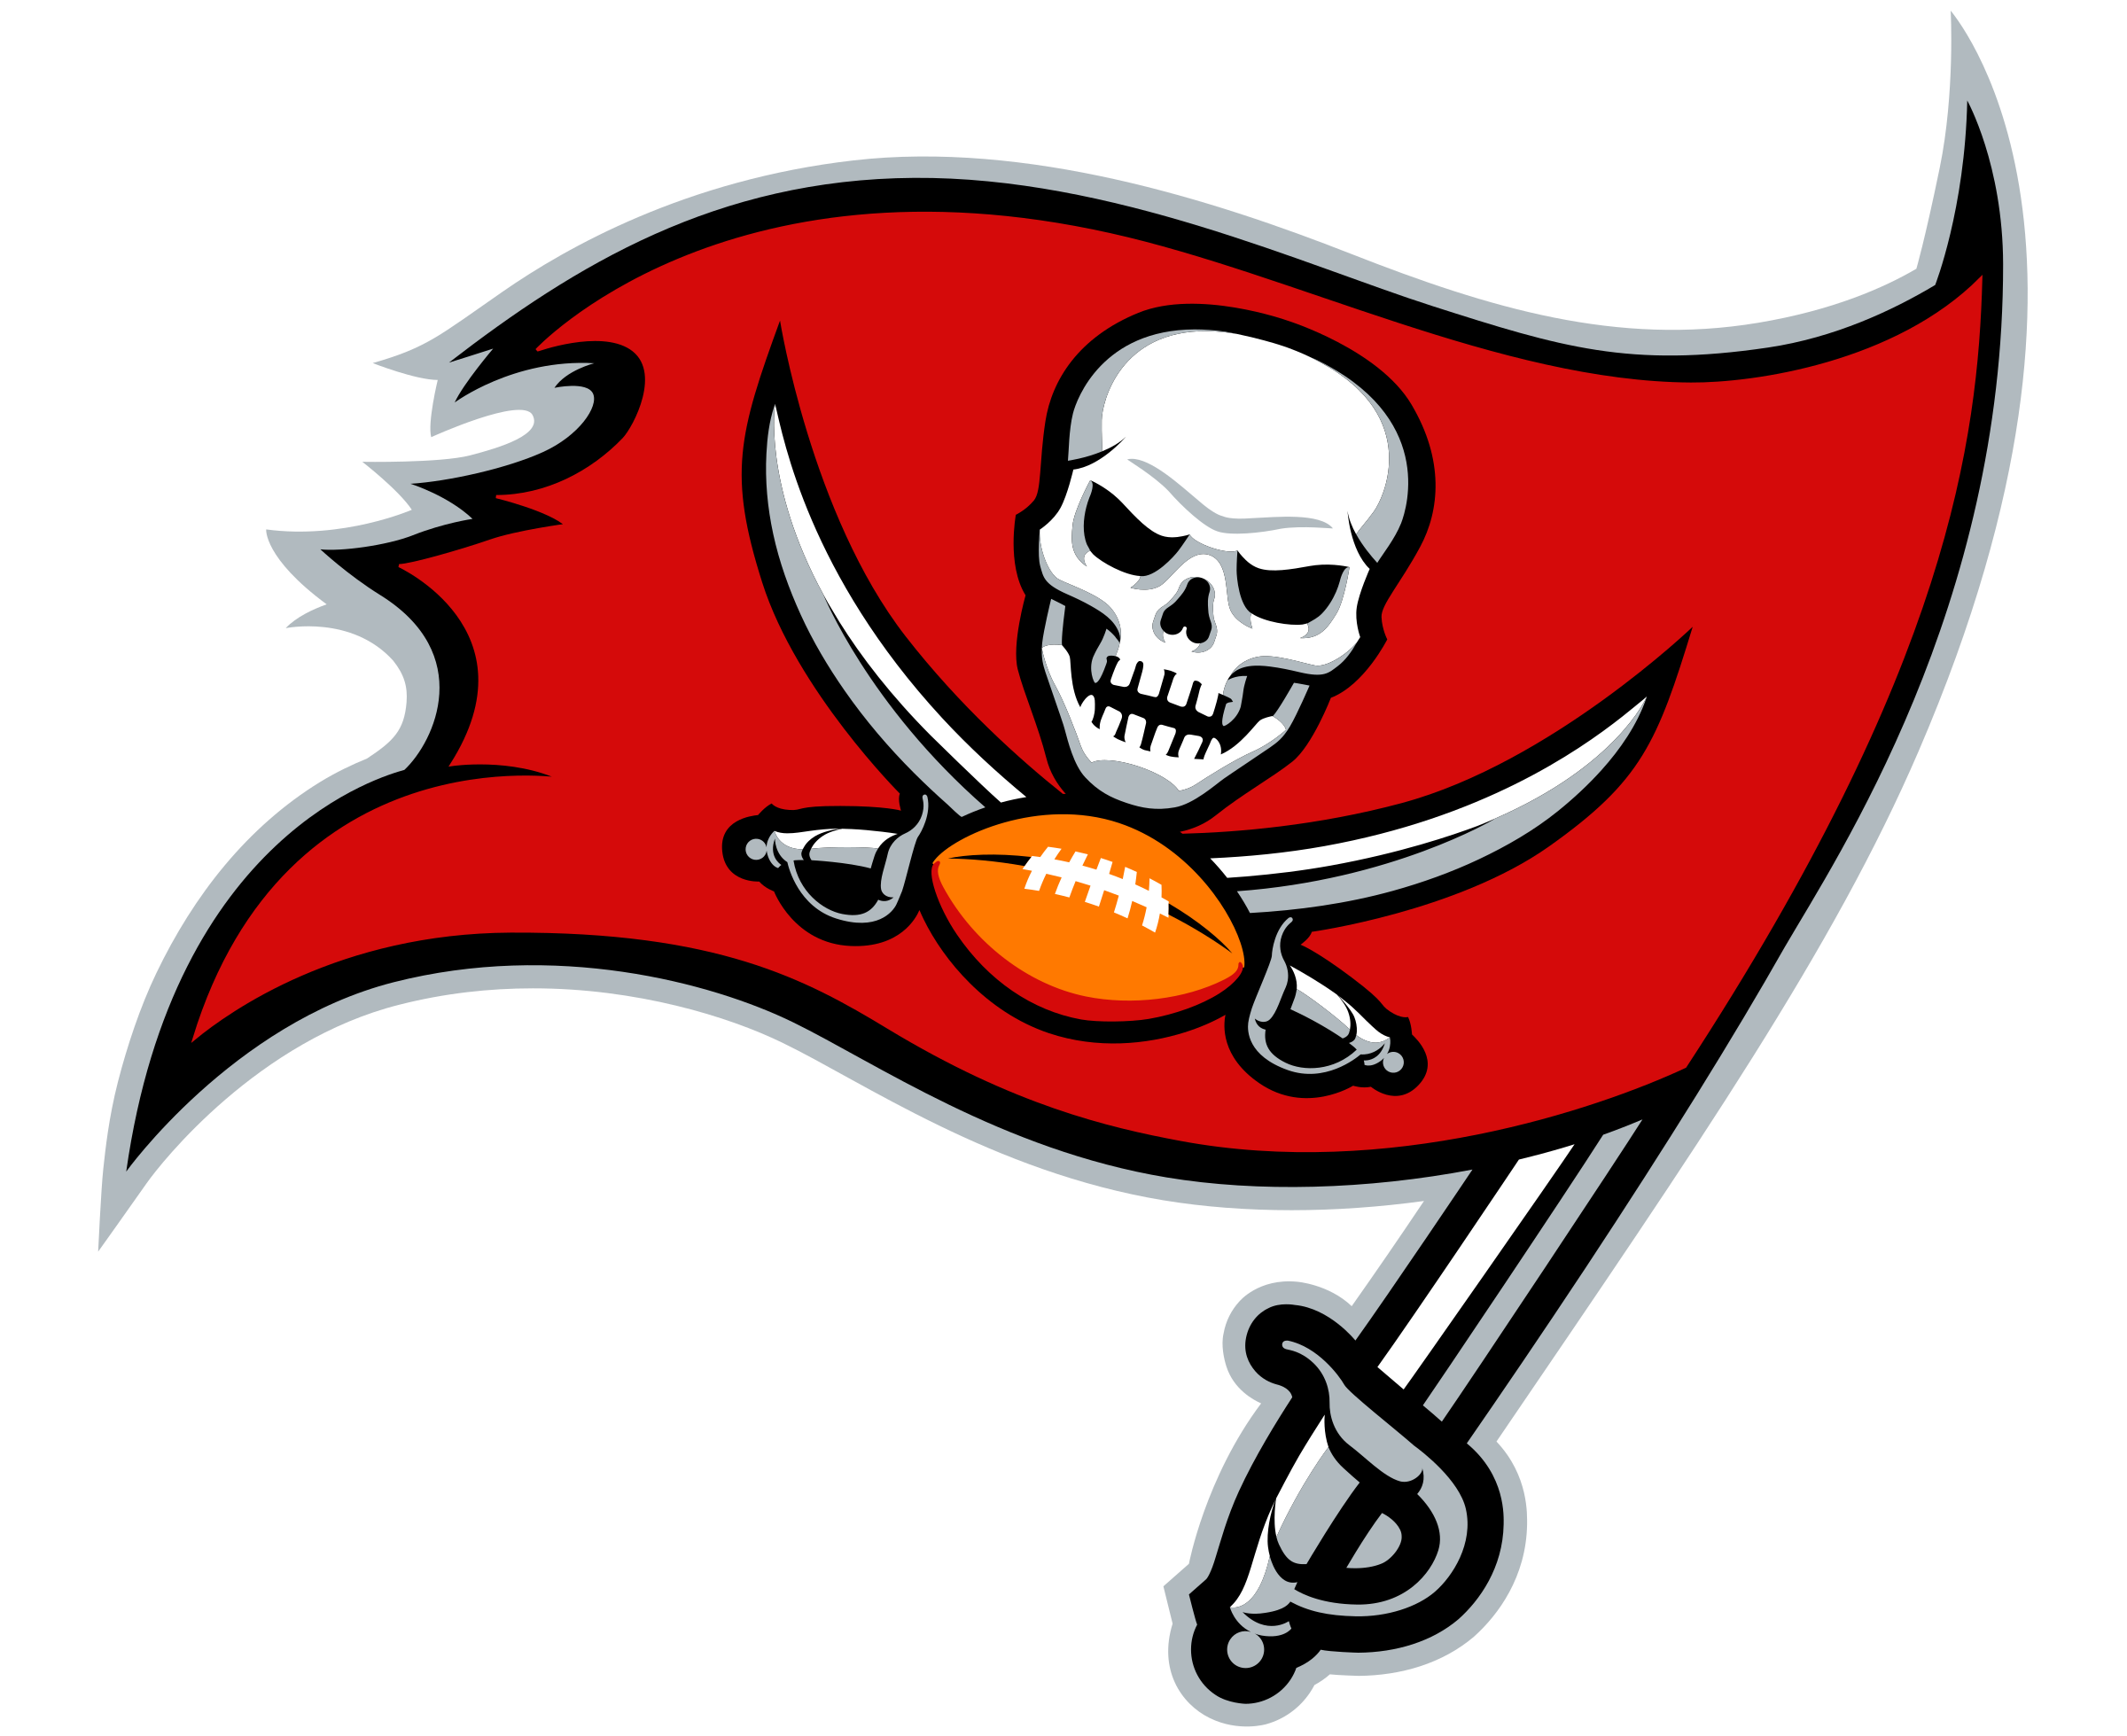 1be51fa161d24 There was plenty of excitement this winter in Tampa Bay when Bruce Arians  was hired as the new head coach of the Buccaneers. Arians was a 2-time  Super Bowl ...